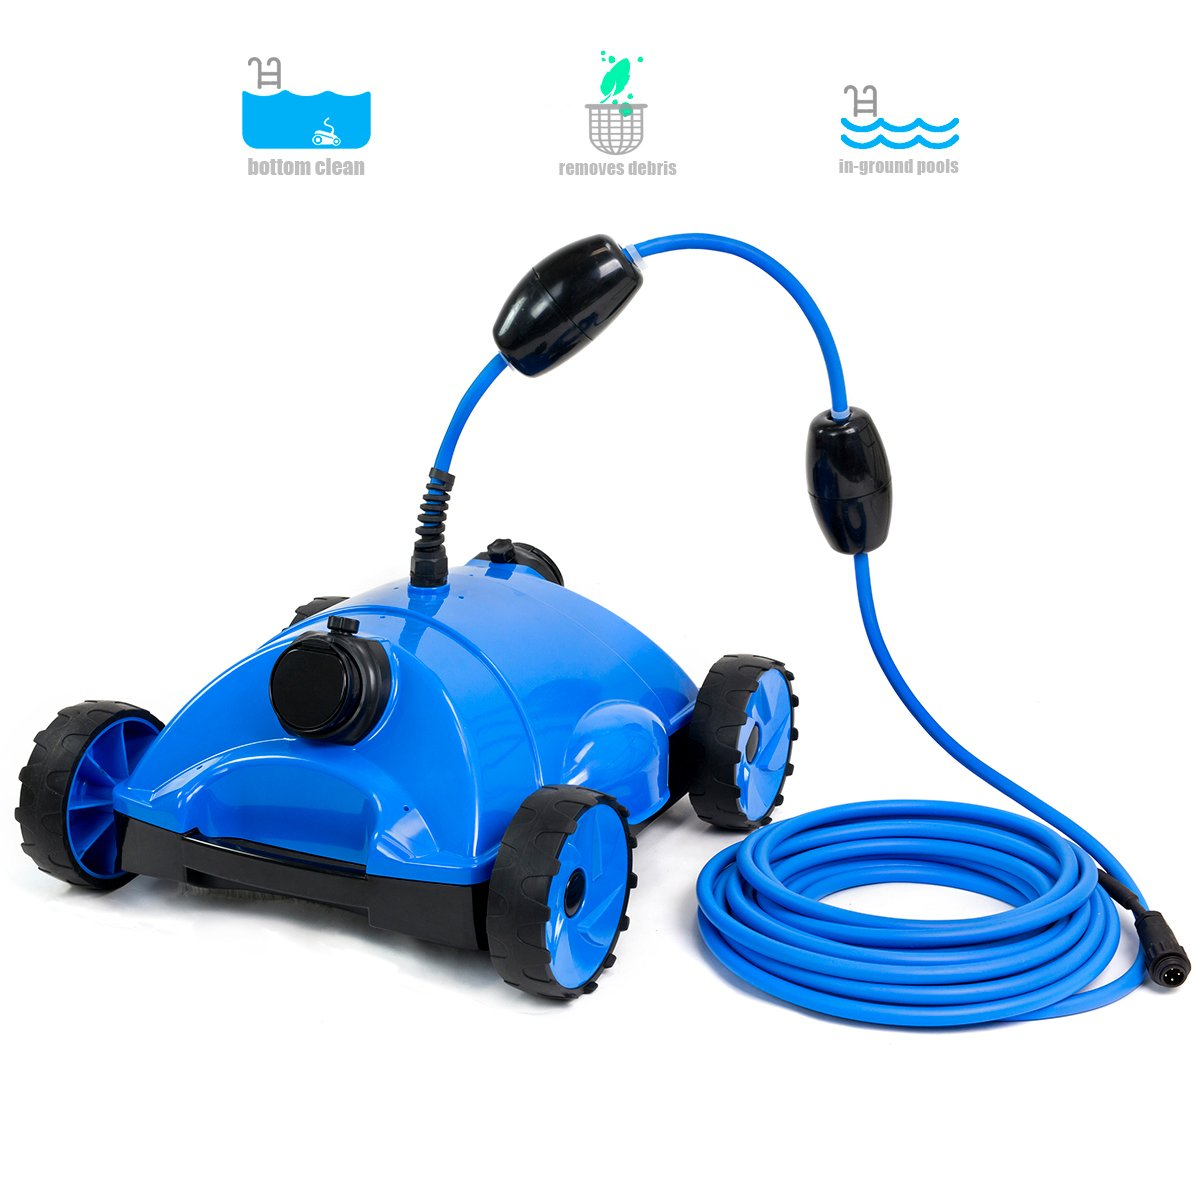 XtremepowerUS Pool Cleaner Floor Vacuum Robotic Style with 43 Feet Swivel Cable by XtremepowerUS